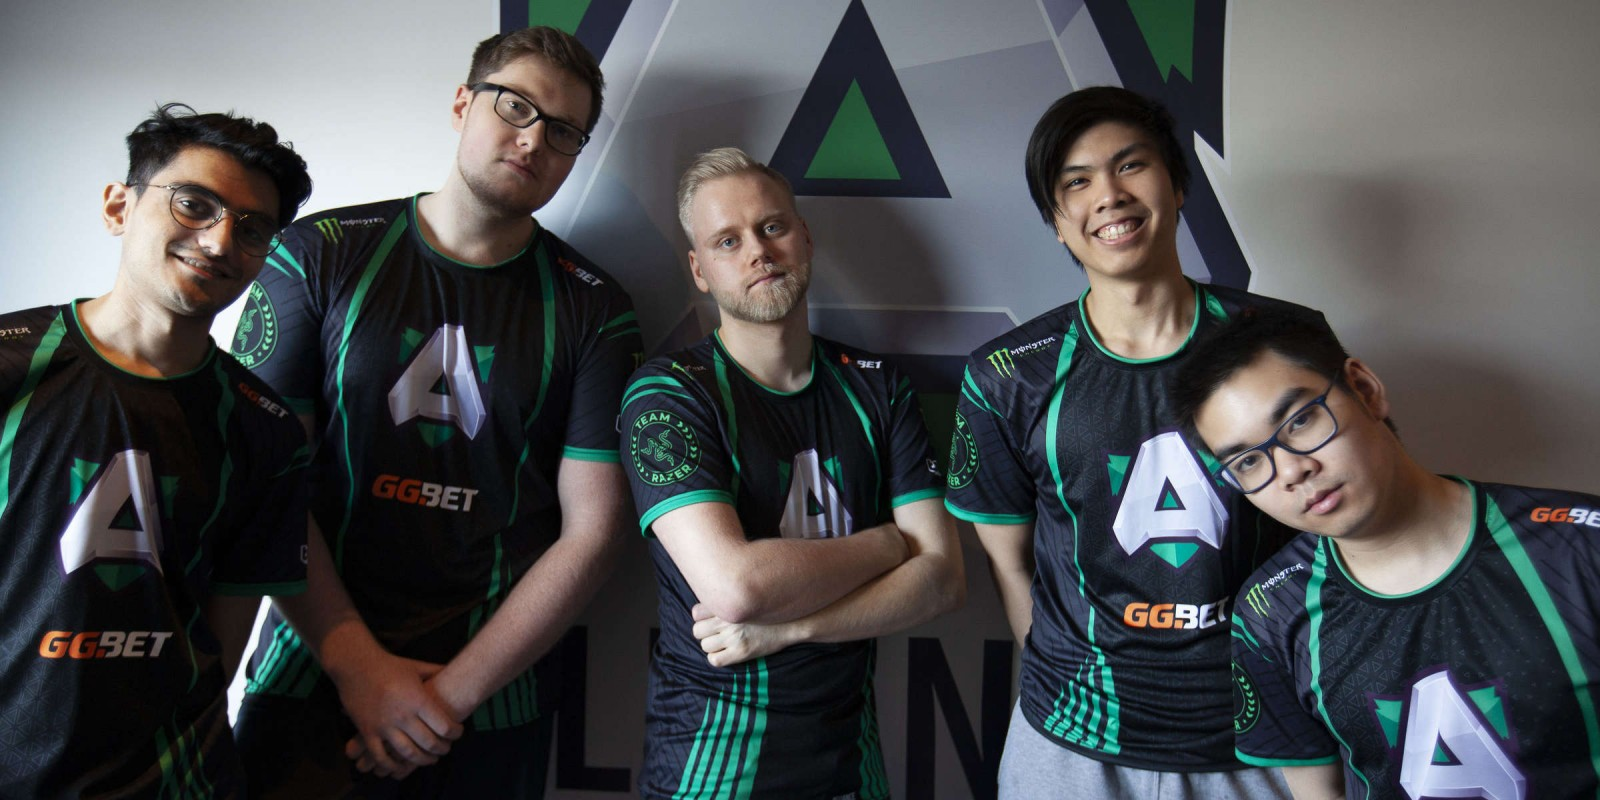 Photo of the Alliance Dota 2 Team and Smash player Armada